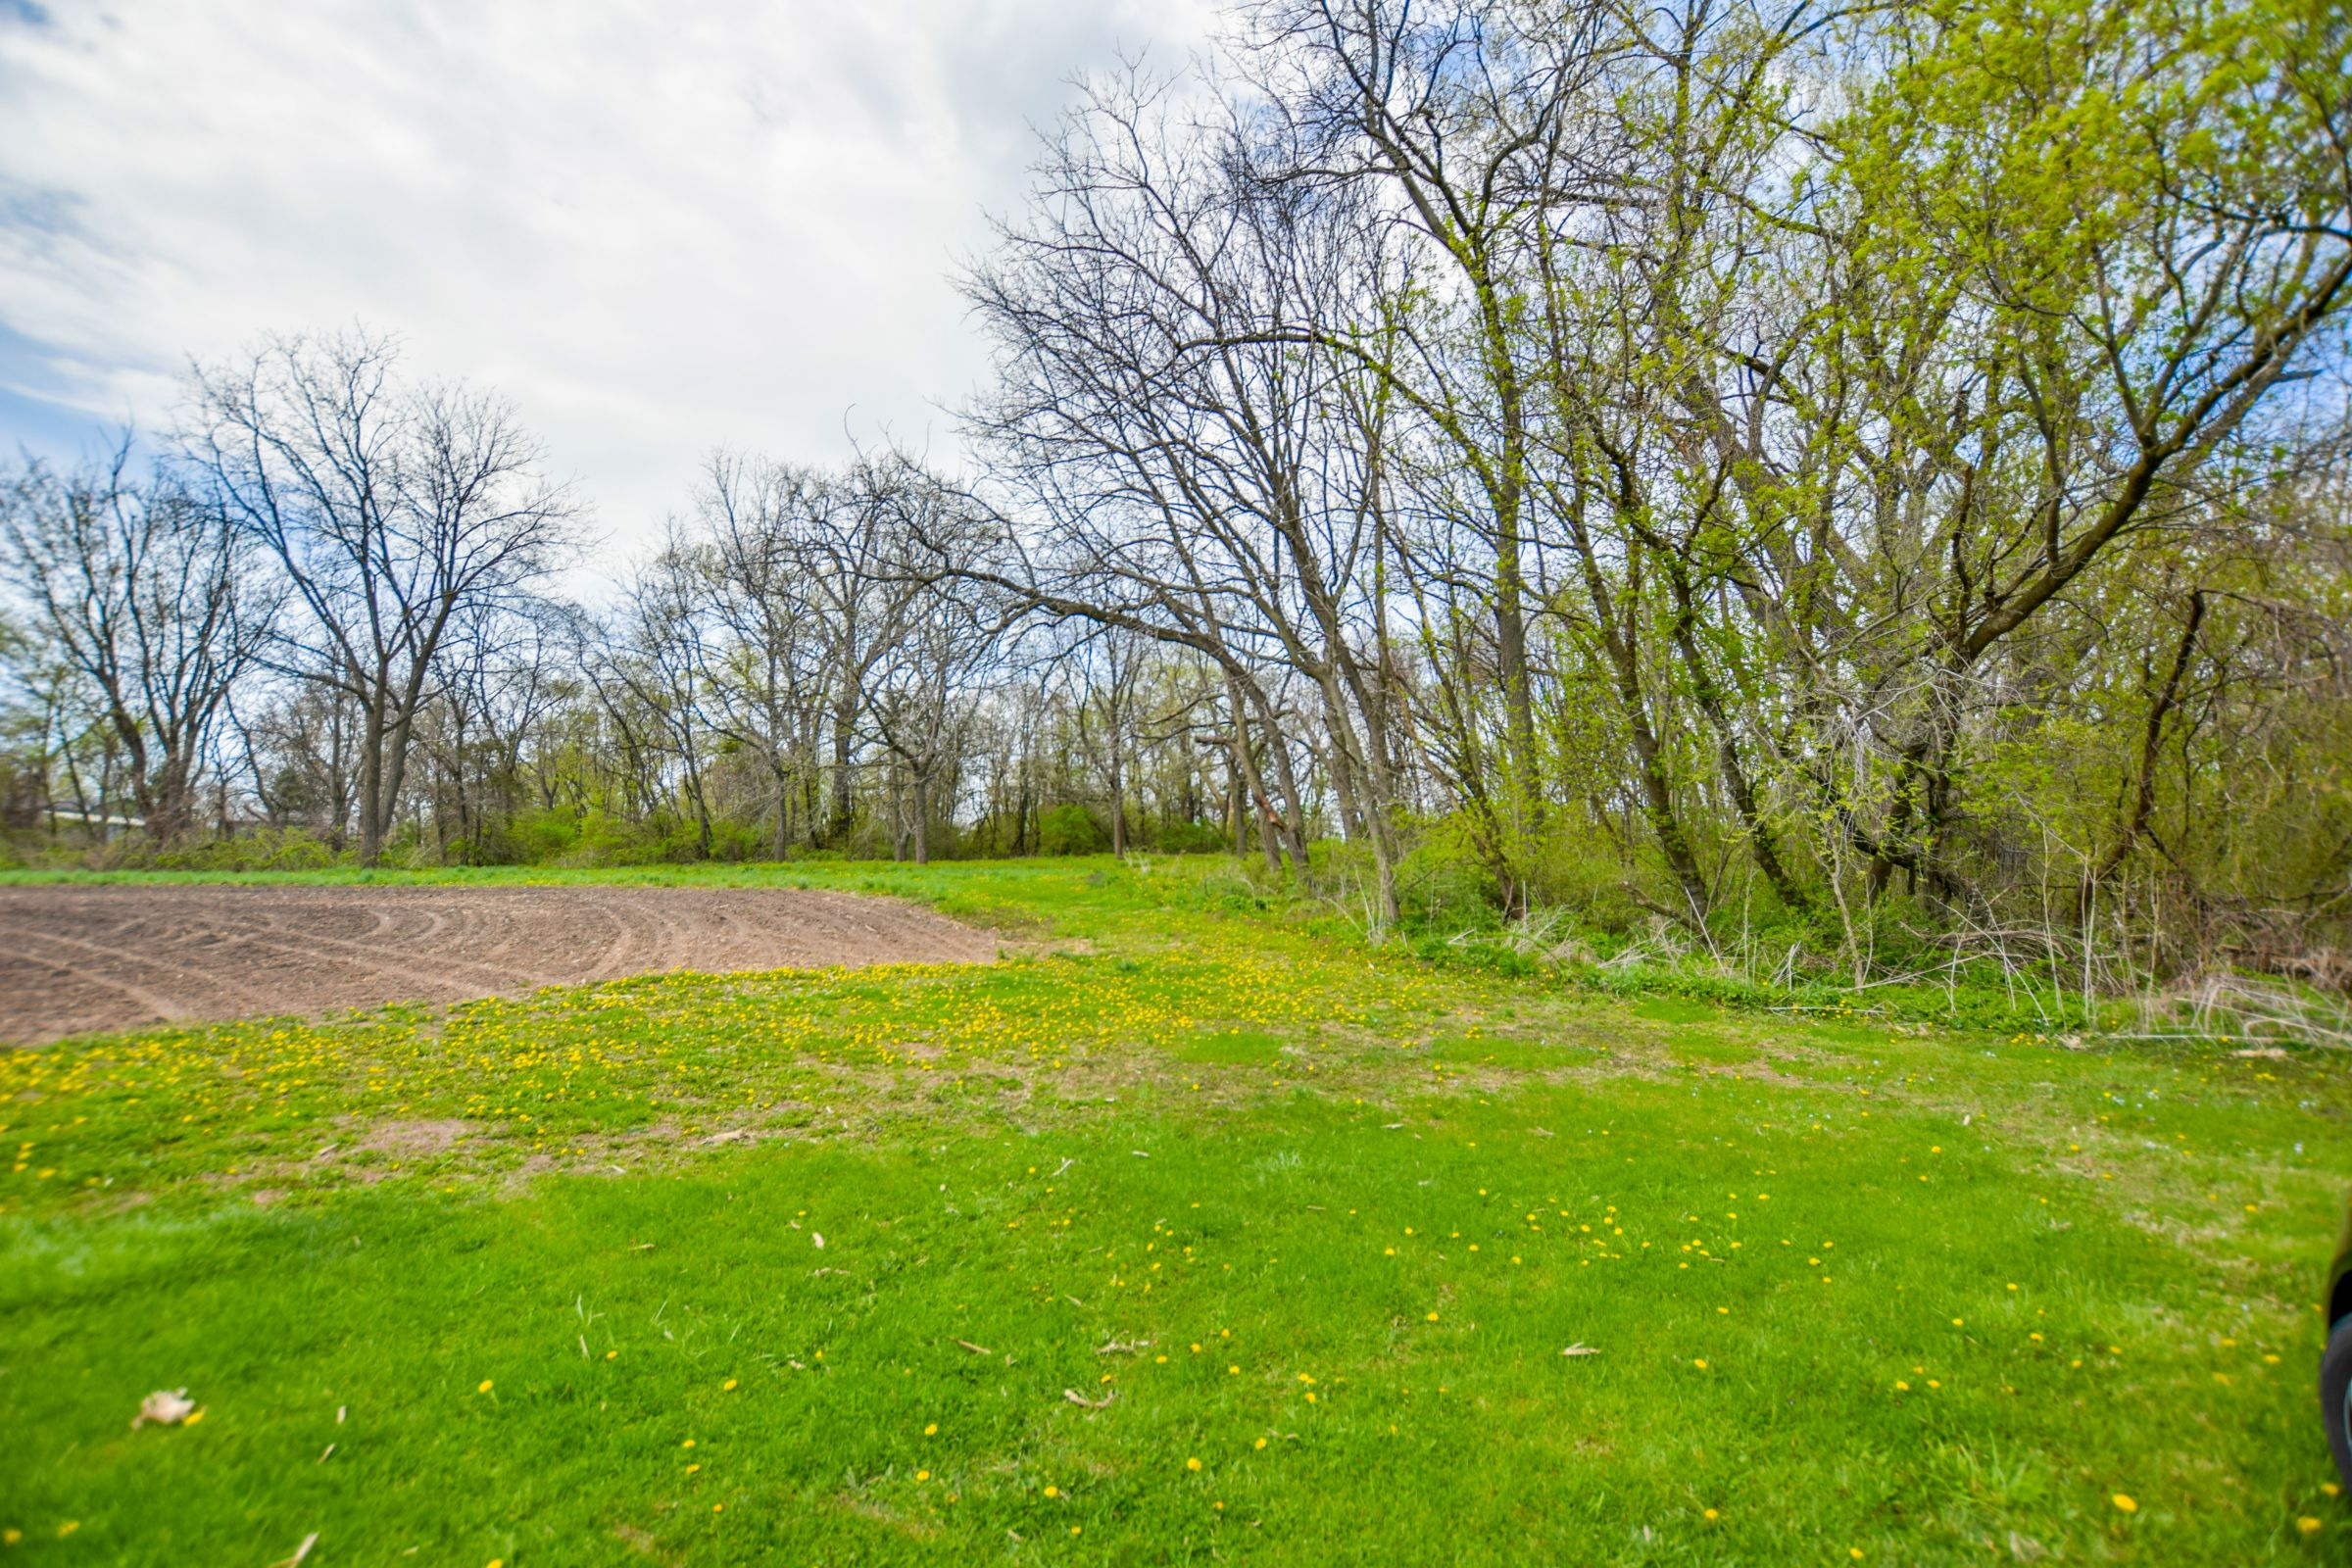 development-land-commercial-iowa-county-wisconsin-152-acres-listing-number-15474-1-2021-05-18-165926.jpg